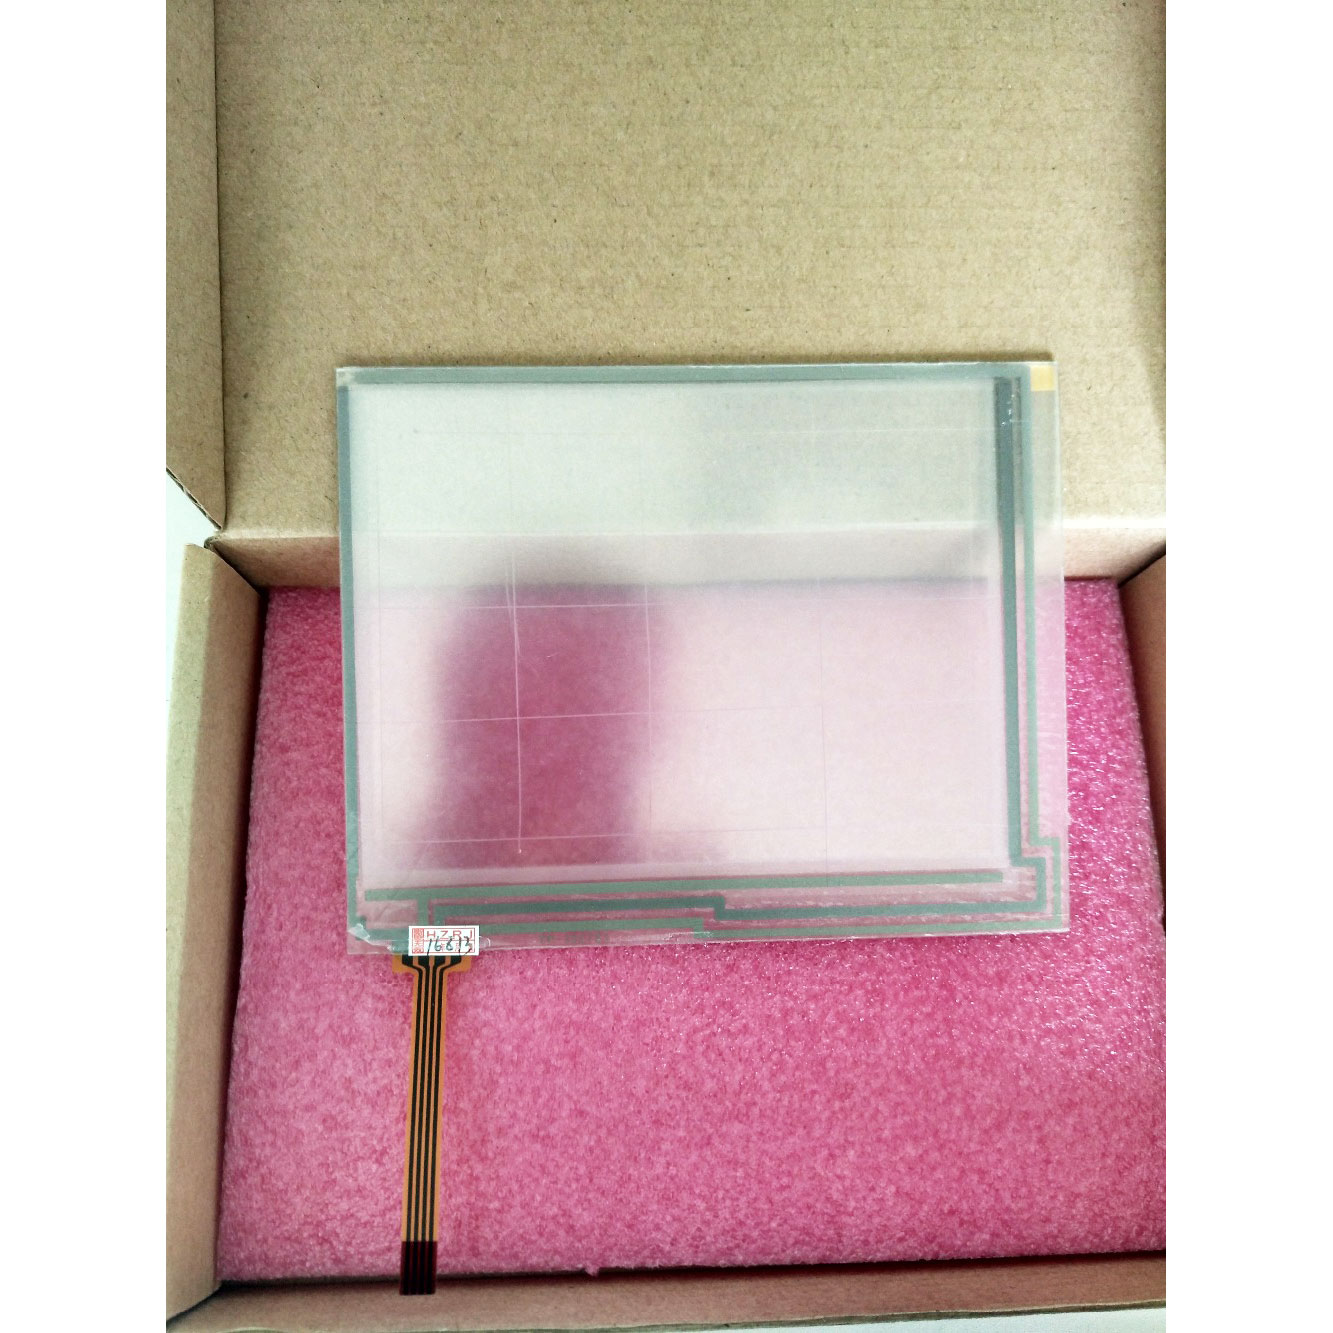 Touch screen glass panel for MT506L MT506LV45WV MT506LV45GWV